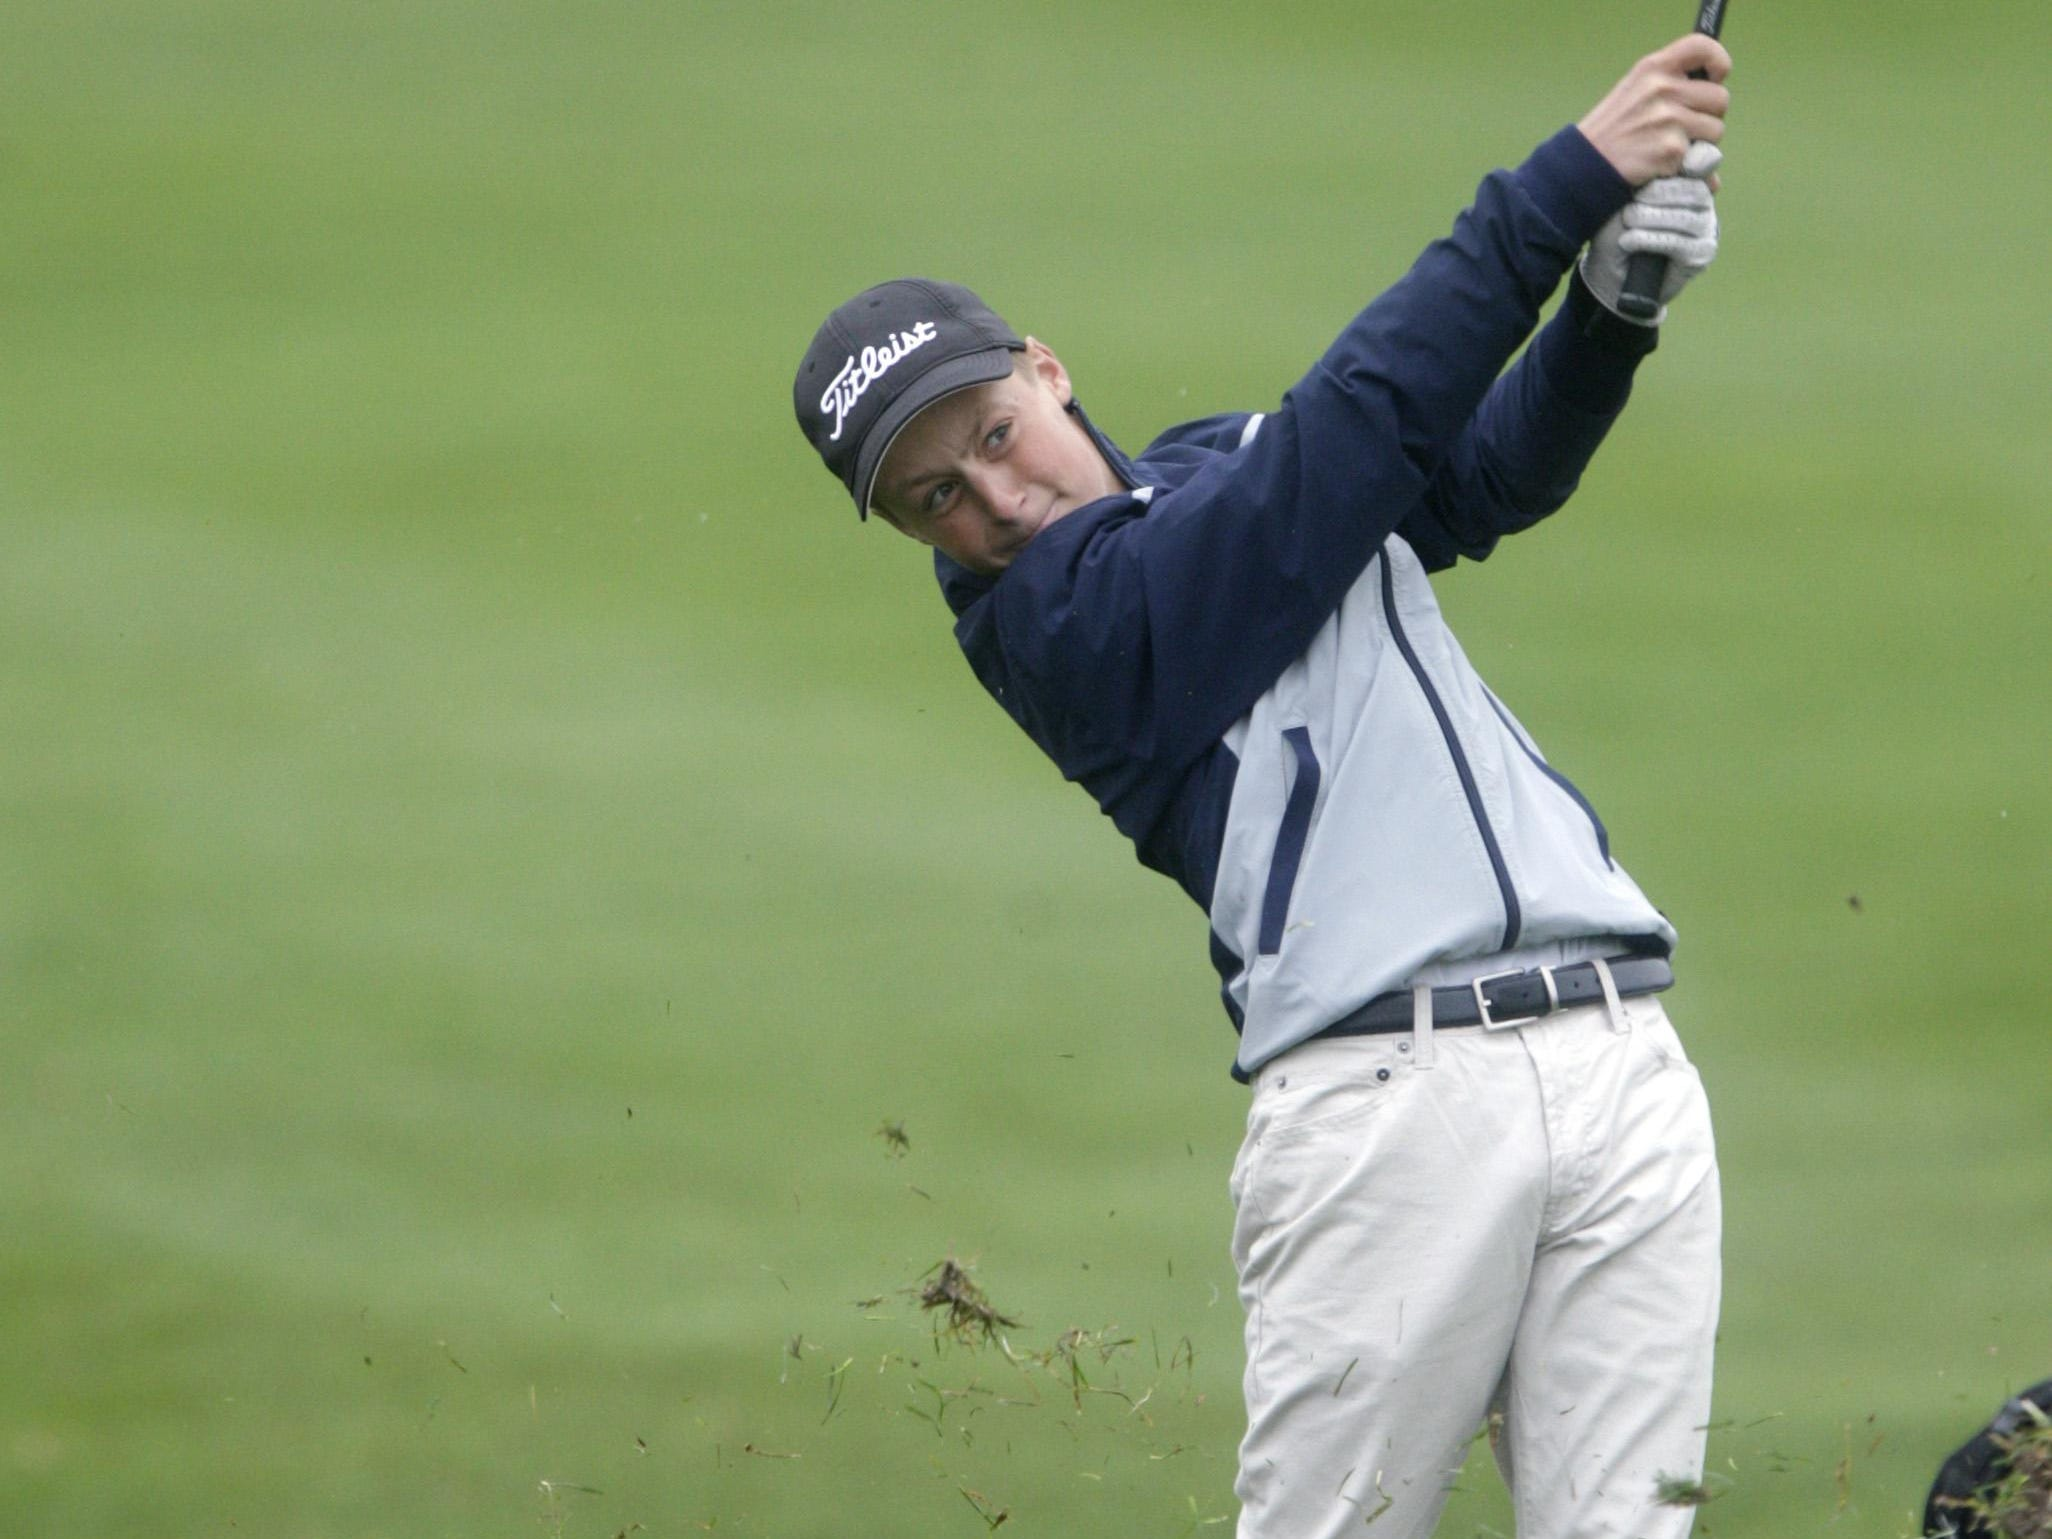 Luke Rezac of Sioux Falls Lincoln hits an approach shot during the opening round of the Class AA State Golf Tournament Monday at Meadowbrook Golf Course.